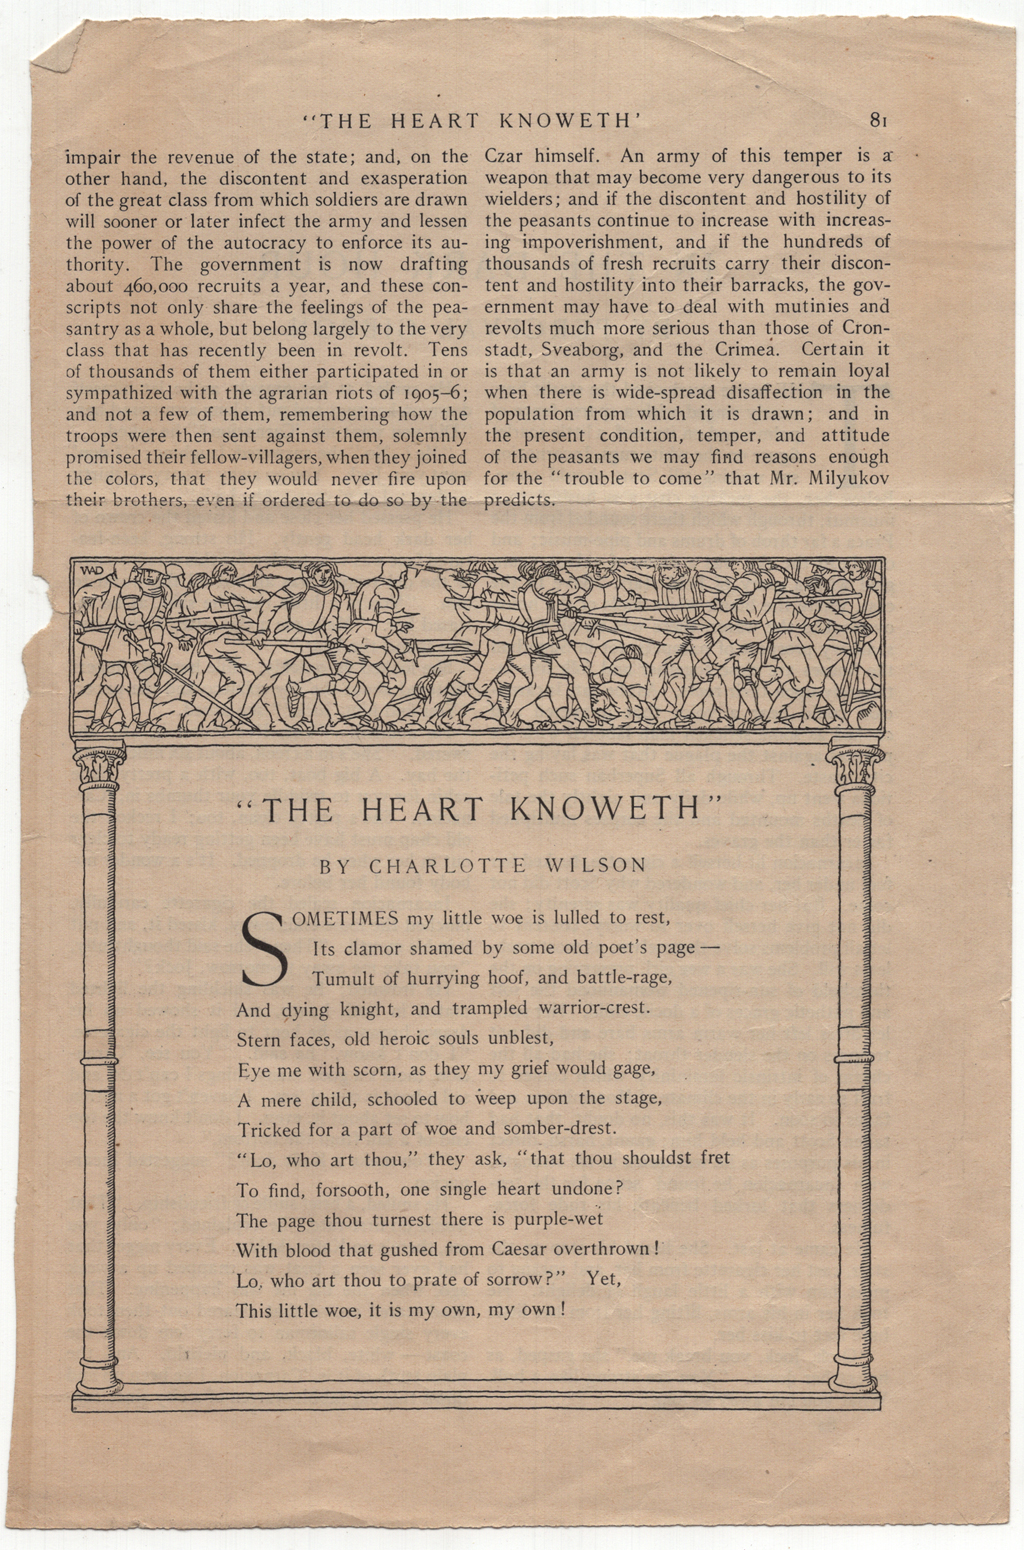 """The Heart Knoweth"" by Charlotte Wilson from McClure's Magazine (May 1908, p. 81). Decorative frame by W.A. Dwiggins. Boston Public Library, 1974 W.A. Dwiggins Collection, Box 41, Folder 33."